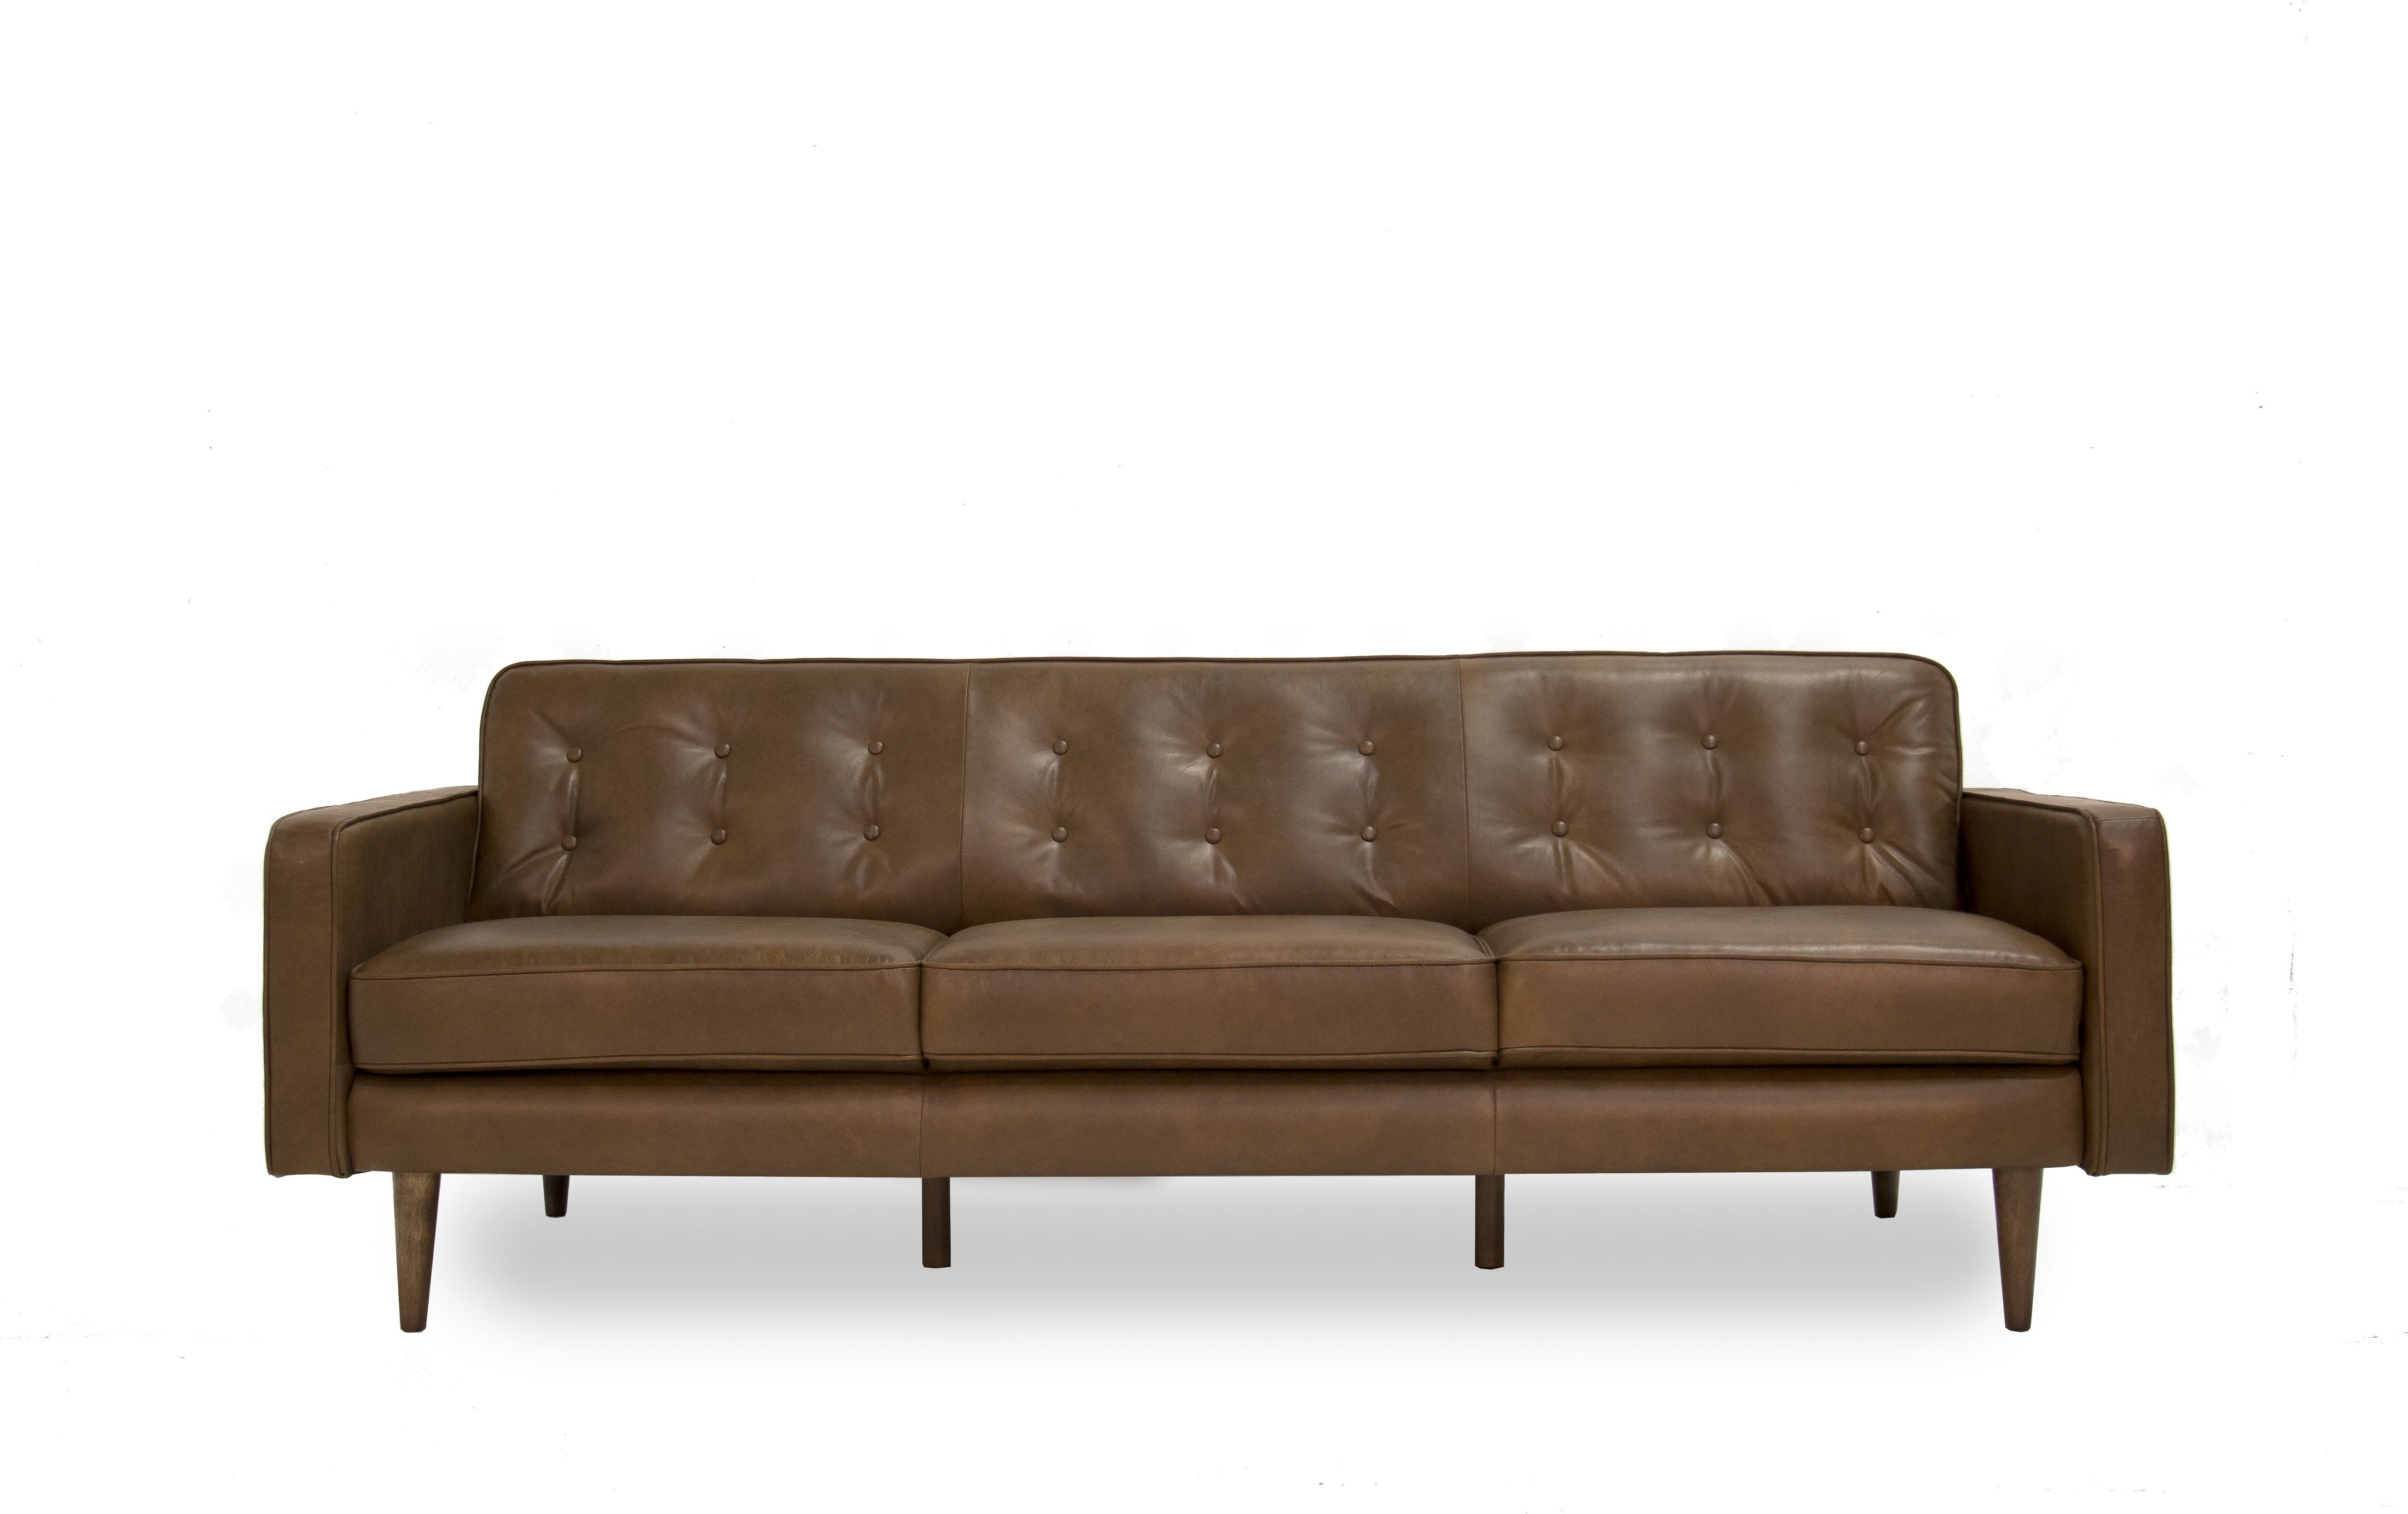 Modern Leather Sofa (With images)   Mid century modern ...